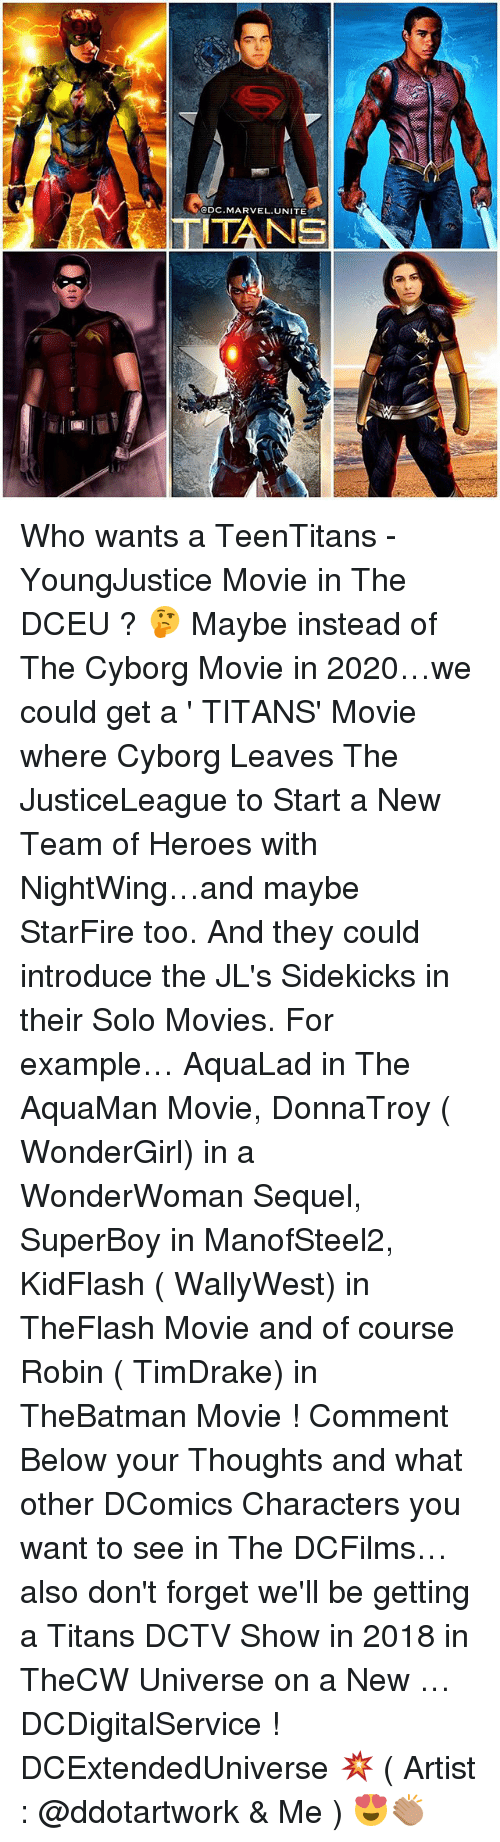 starfire: @DC,MARVEL, UNITE Who wants a TeenTitans - YoungJustice Movie in The DCEU ? 🤔 Maybe instead of The Cyborg Movie in 2020…we could get a ' TITANS' Movie where Cyborg Leaves The JusticeLeague to Start a New Team of Heroes with NightWing…and maybe StarFire too. And they could introduce the JL's Sidekicks in their Solo Movies. For example… AquaLad in The AquaMan Movie, DonnaTroy ( WonderGirl) in a WonderWoman Sequel, SuperBoy in ManofSteel2, KidFlash ( WallyWest) in TheFlash Movie and of course Robin ( TimDrake) in TheBatman Movie ! Comment Below your Thoughts and what other DComics Characters you want to see in The DCFilms…also don't forget we'll be getting a Titans DCTV Show in 2018 in TheCW Universe on a New … DCDigitalService ! DCExtendedUniverse 💥 ( Artist : @ddotartwork & Me ) 😍👏🏽